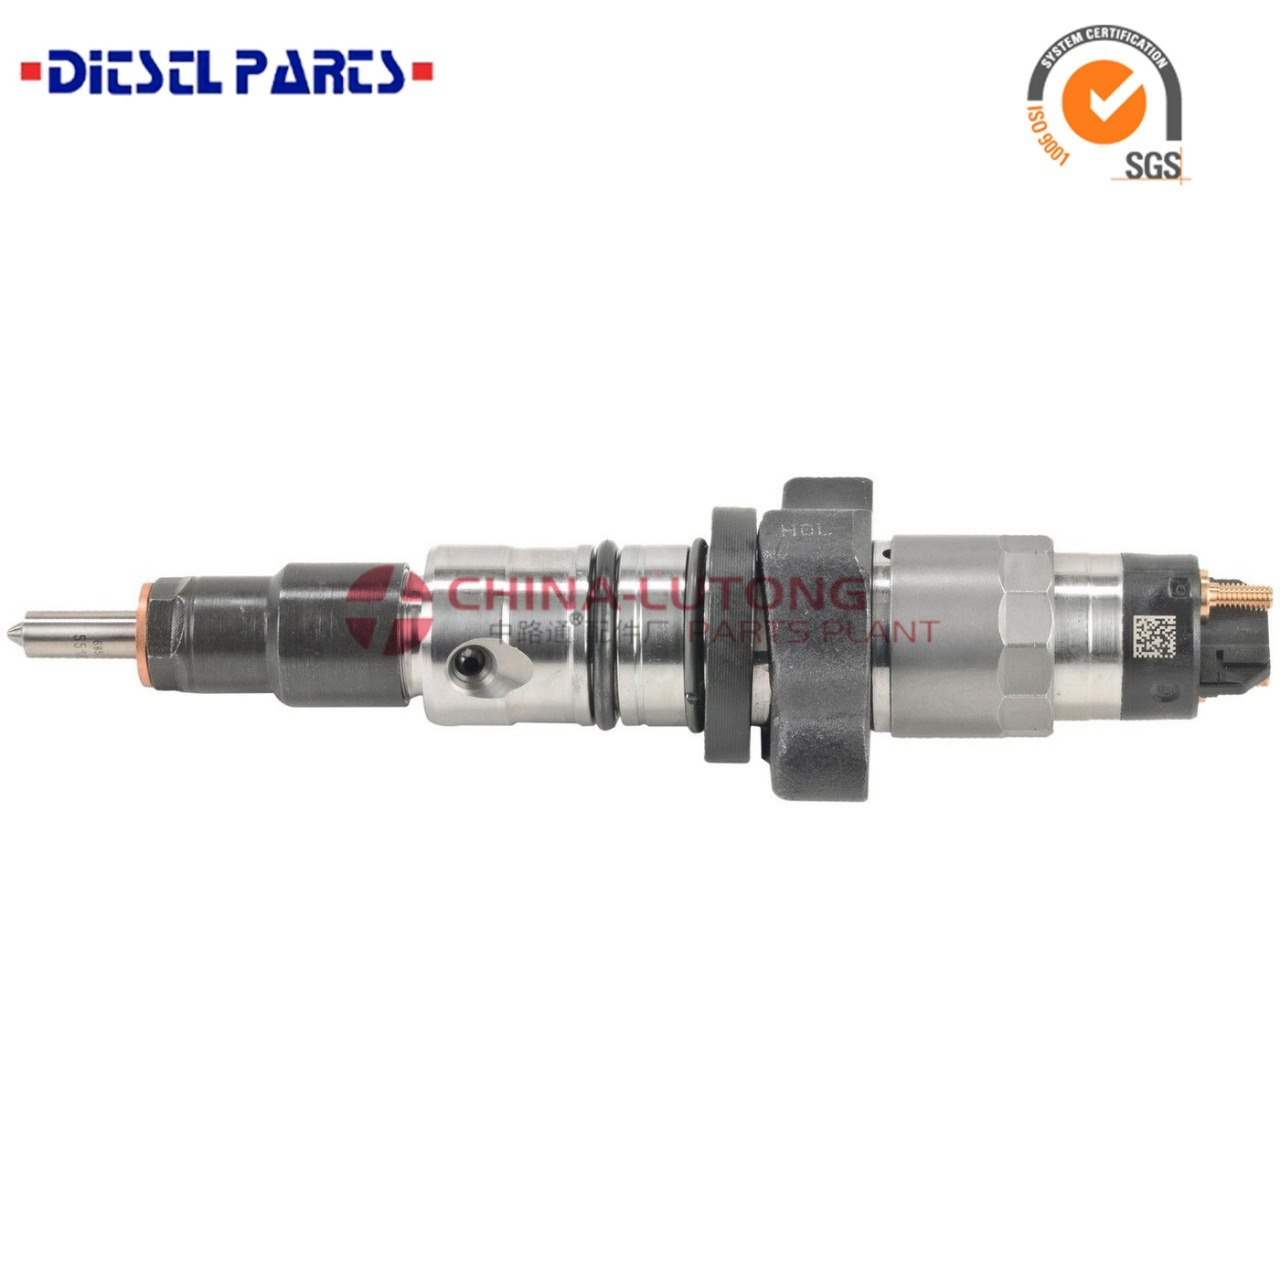 SYSTEM CEATIRICATION -DהנזוL PARלד - SGS CHIN CUTONG AR S PUNNT LO06 OS  Product,Tool,Font,Auto part,Machine